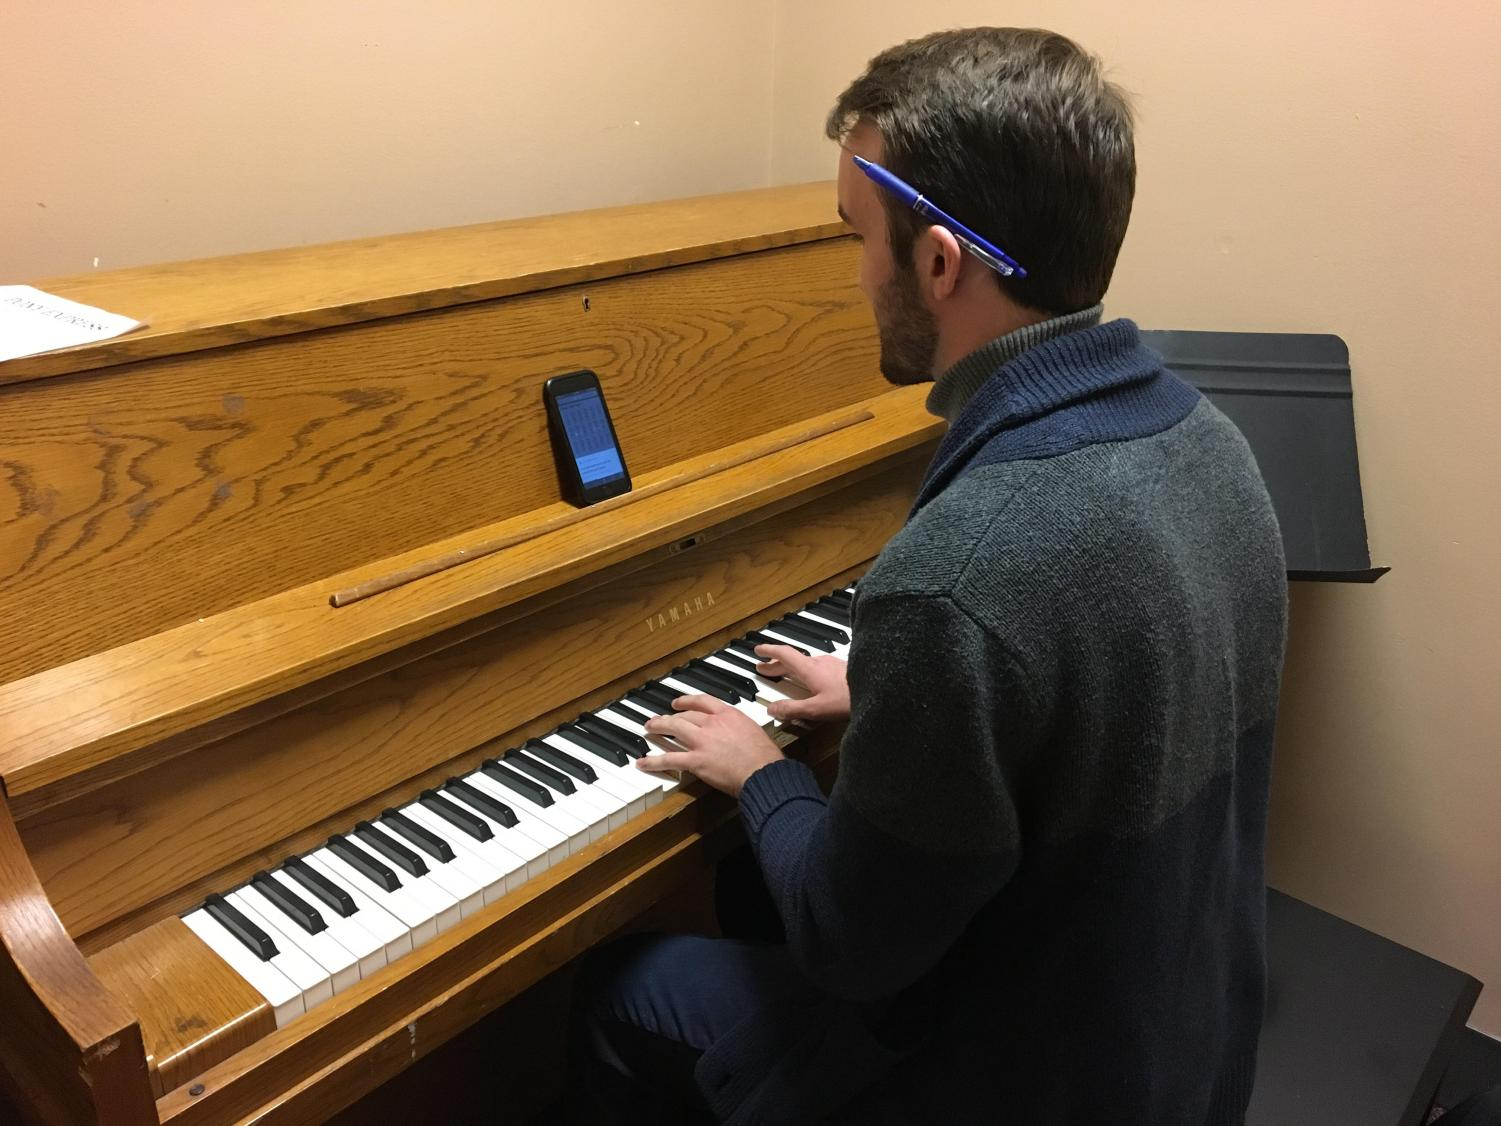 Senior Ben Valerius rehearses in preparation for his Coffeehouse audition. He plans on auditioning with